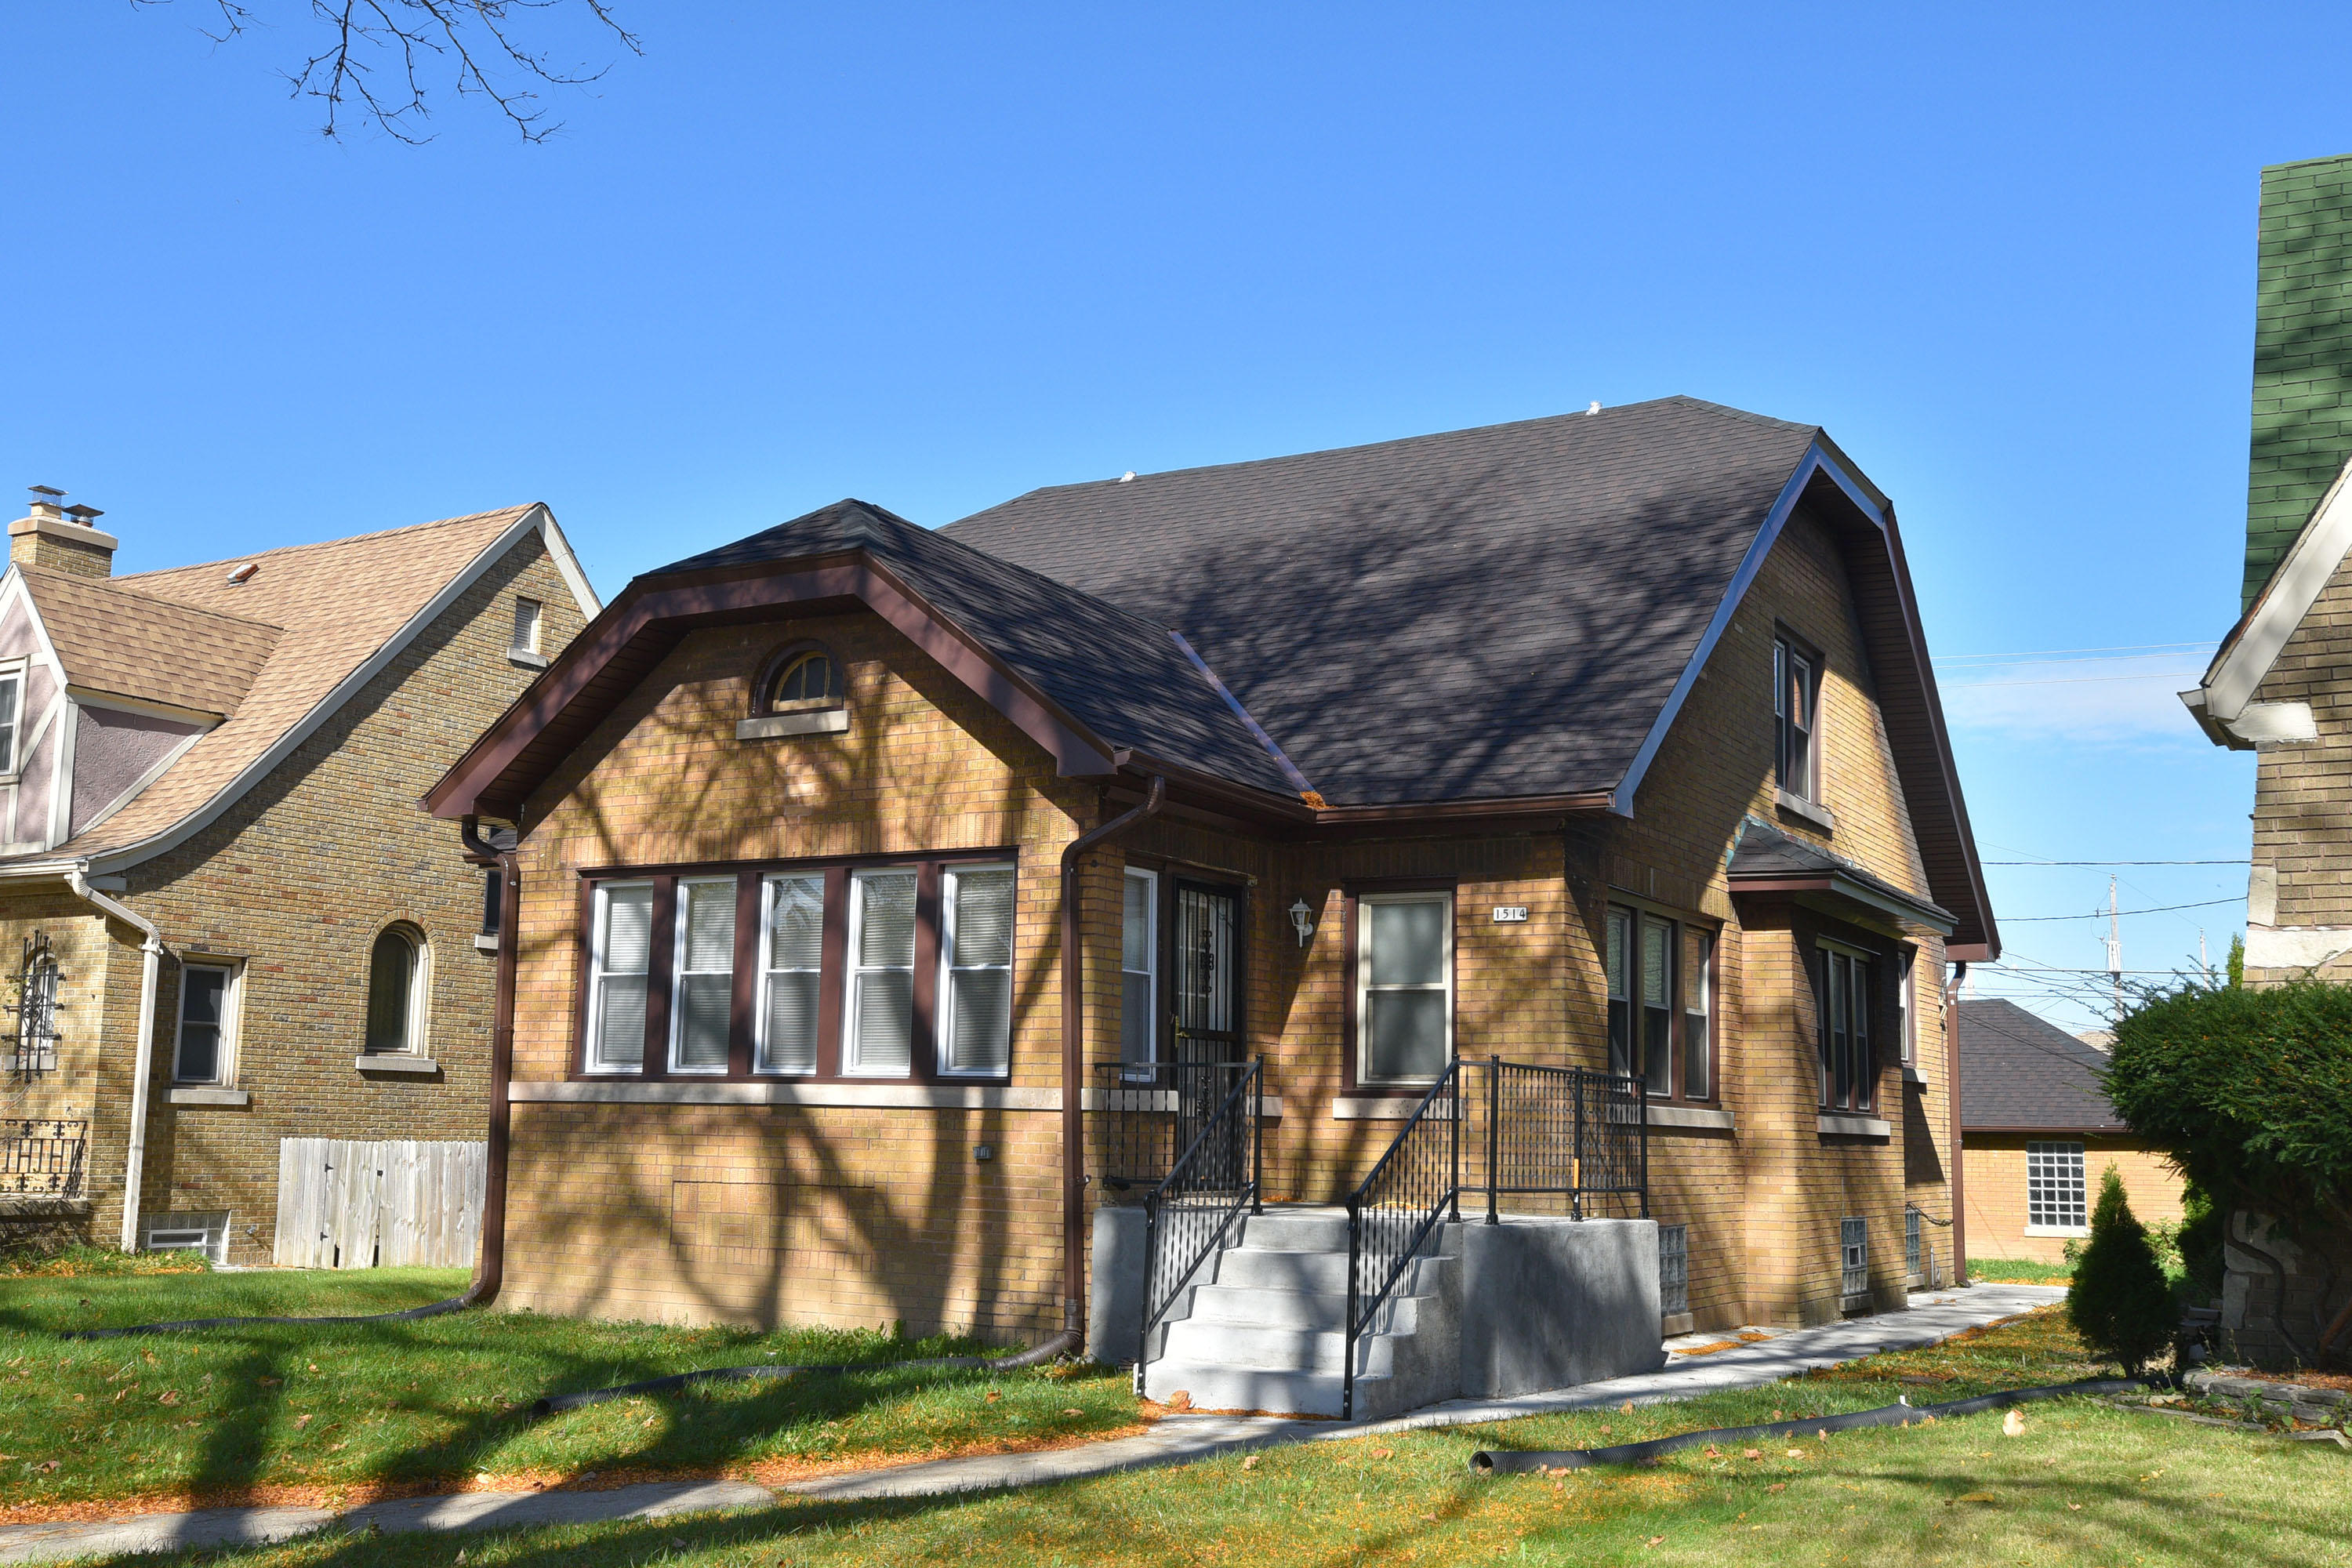 1514 Capitol Dr, Milwaukee, Wisconsin 53206, 4 Bedrooms Bedrooms, 8 Rooms Rooms,1 BathroomBathrooms,Single-Family,For Sale,Capitol Dr,1610676